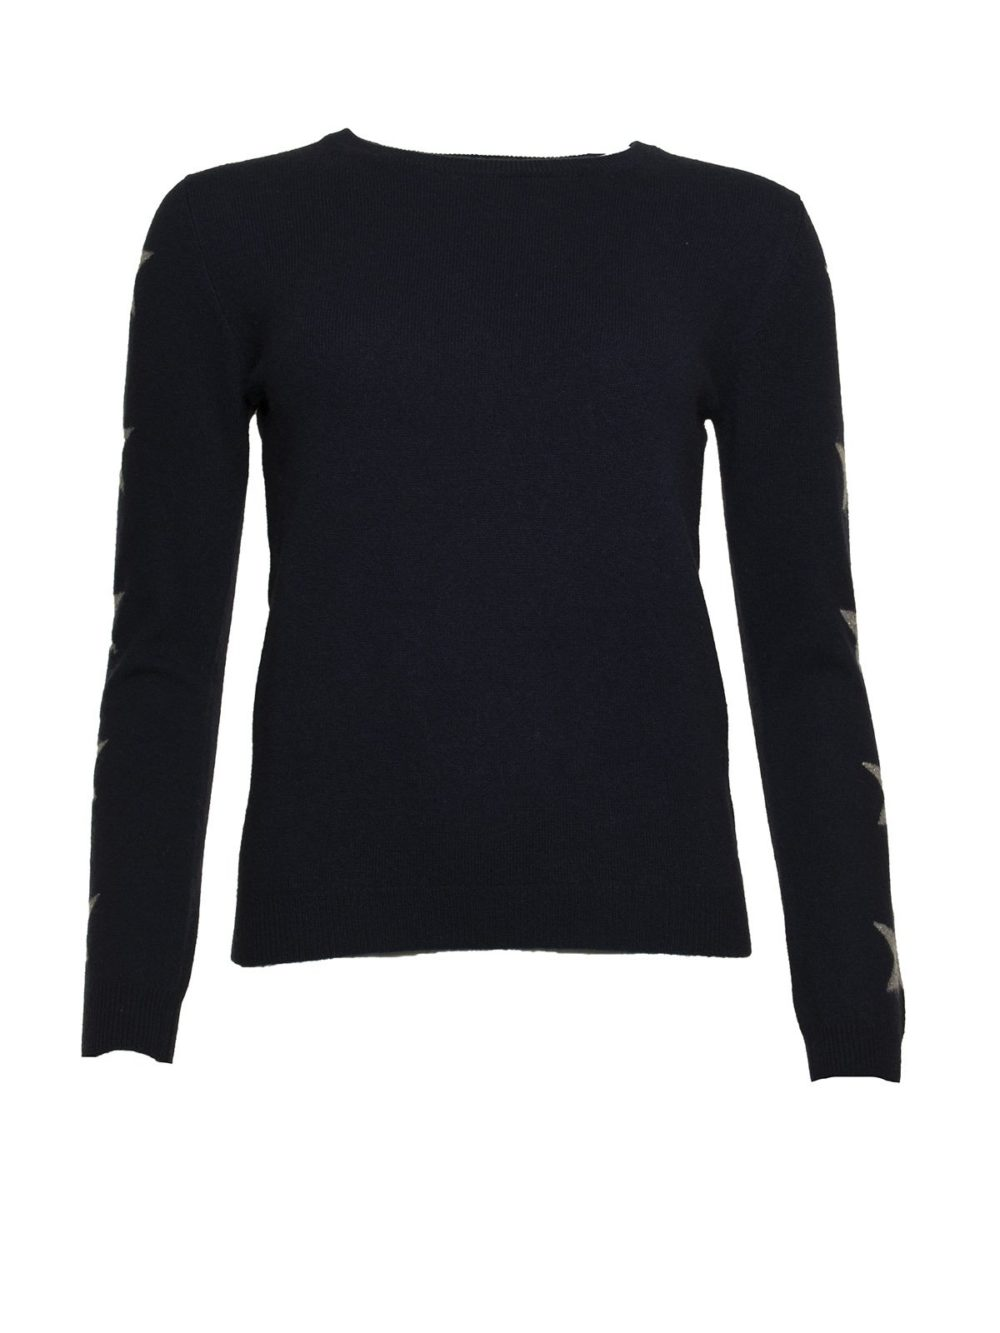 Northern Star Jumper Brodie fine cashmere Women's clothing Women's knitwear